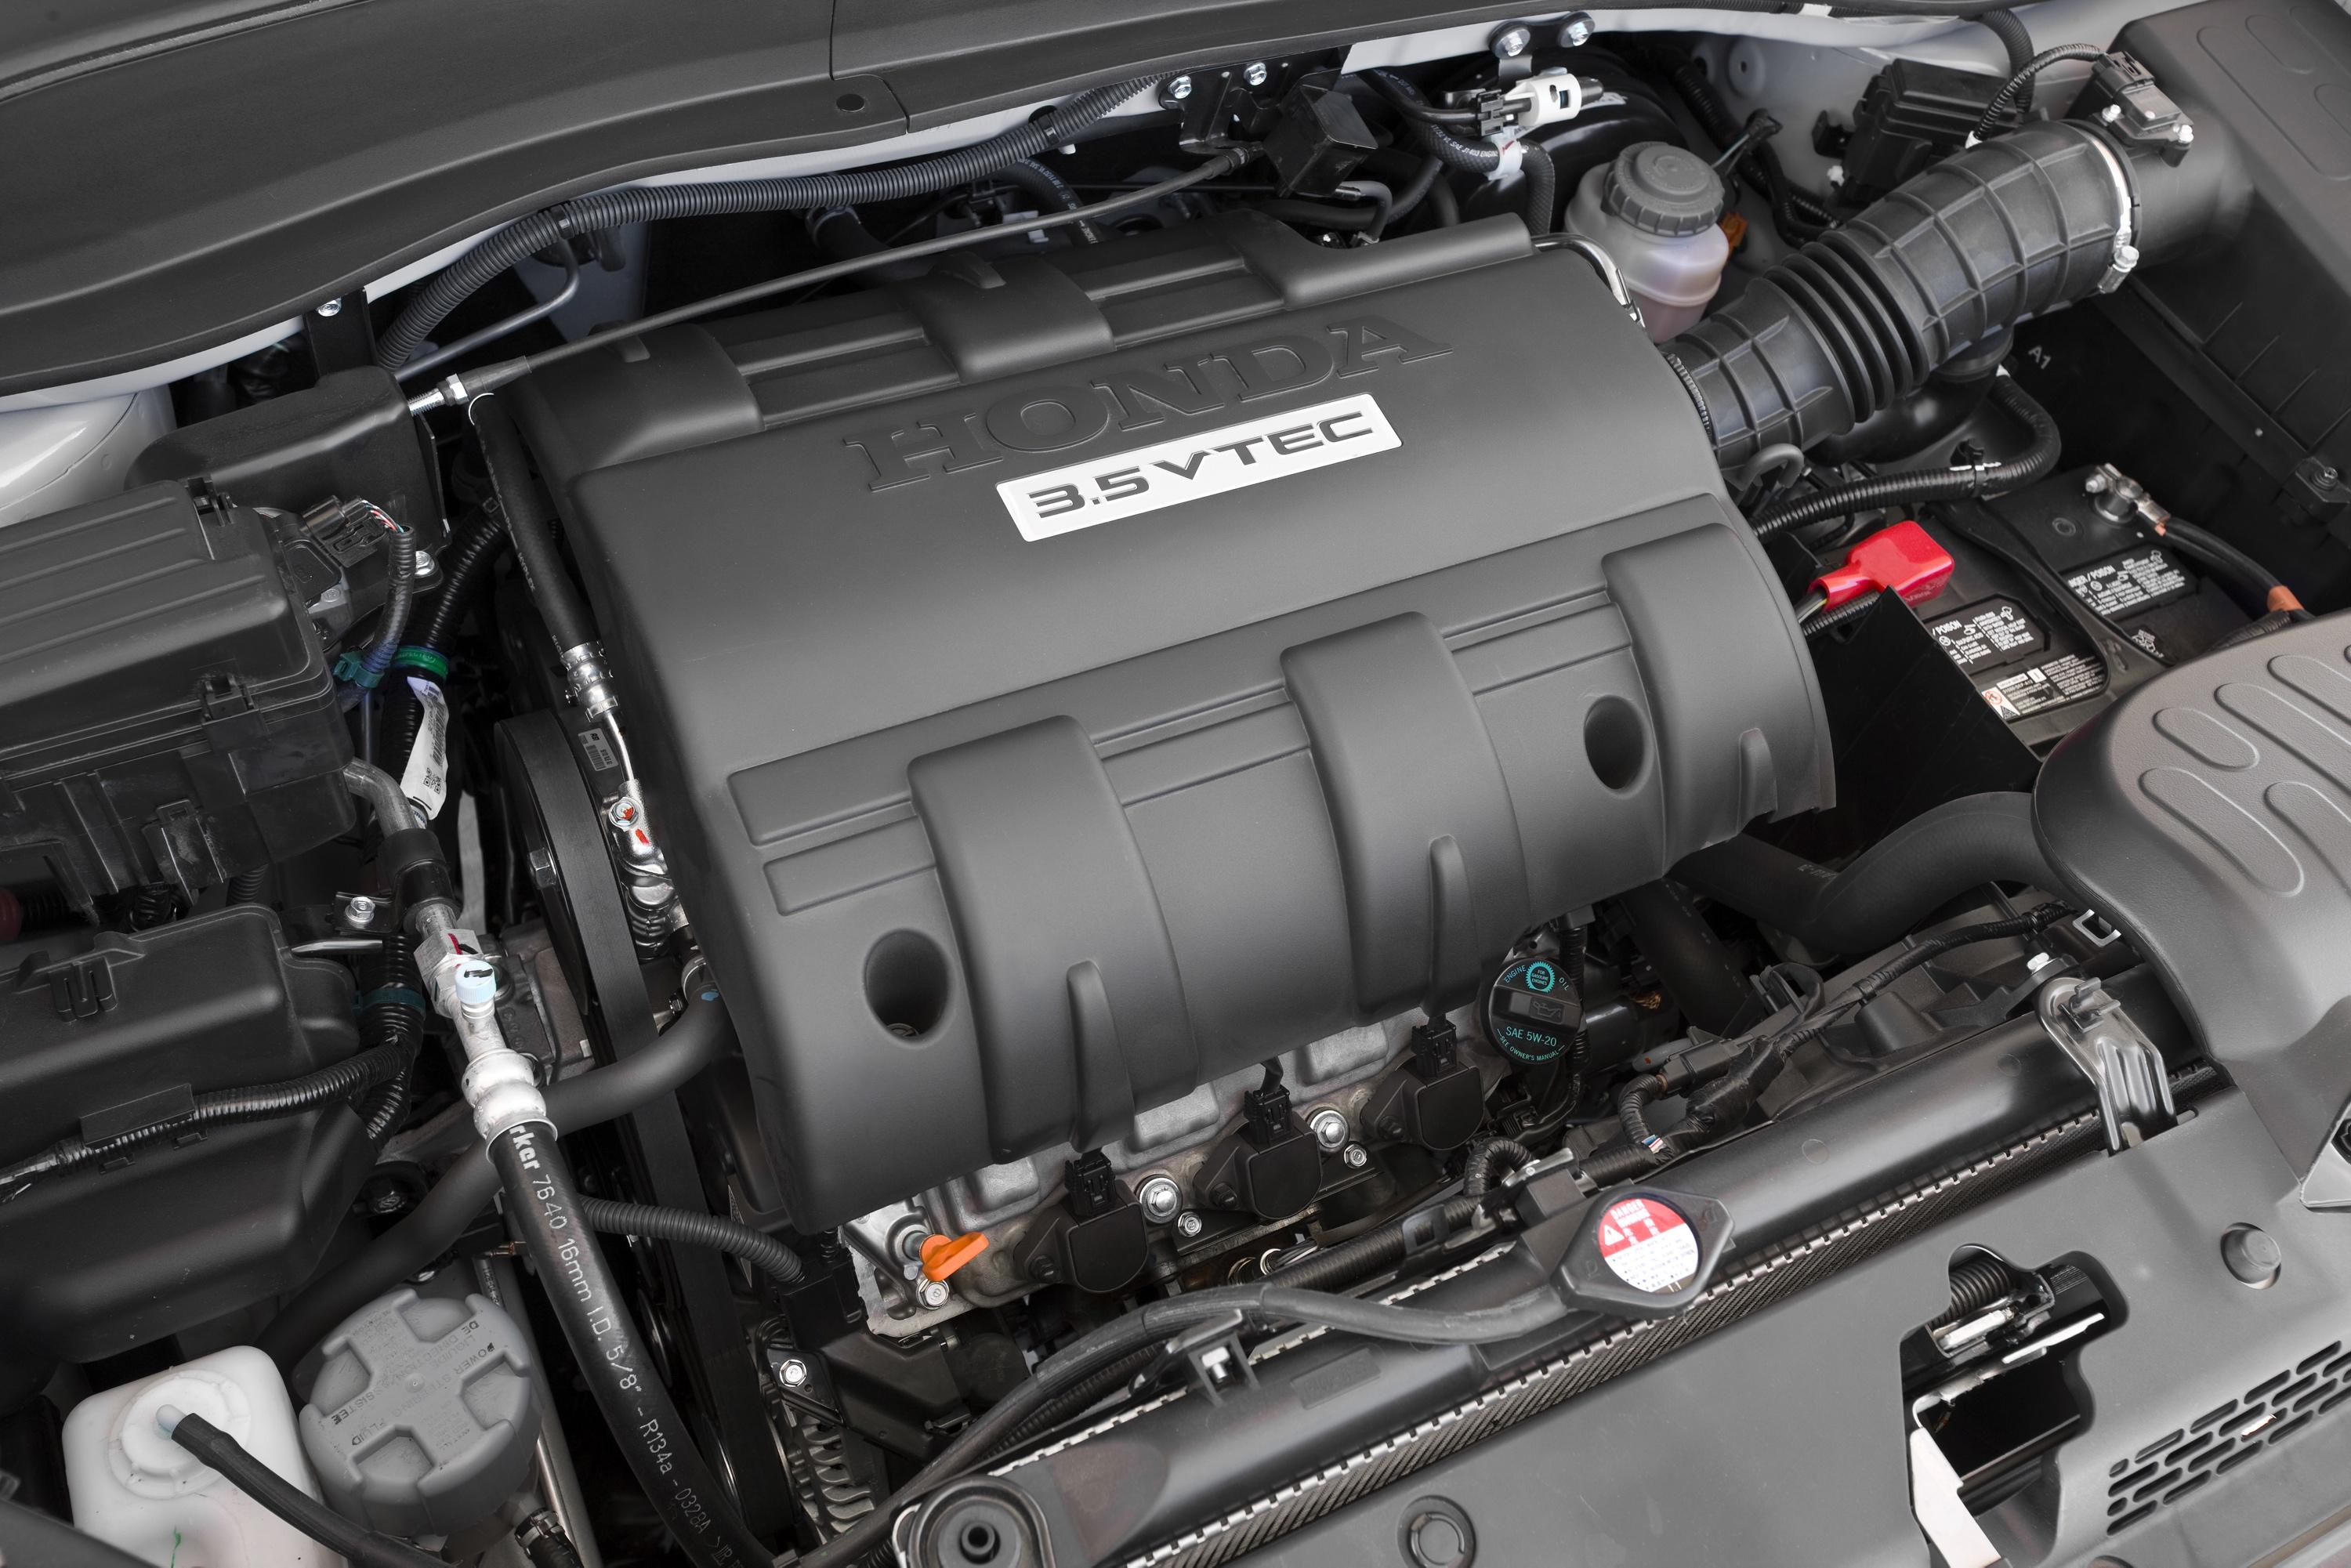 Online 2009 Honda Ridgeline Car Engine